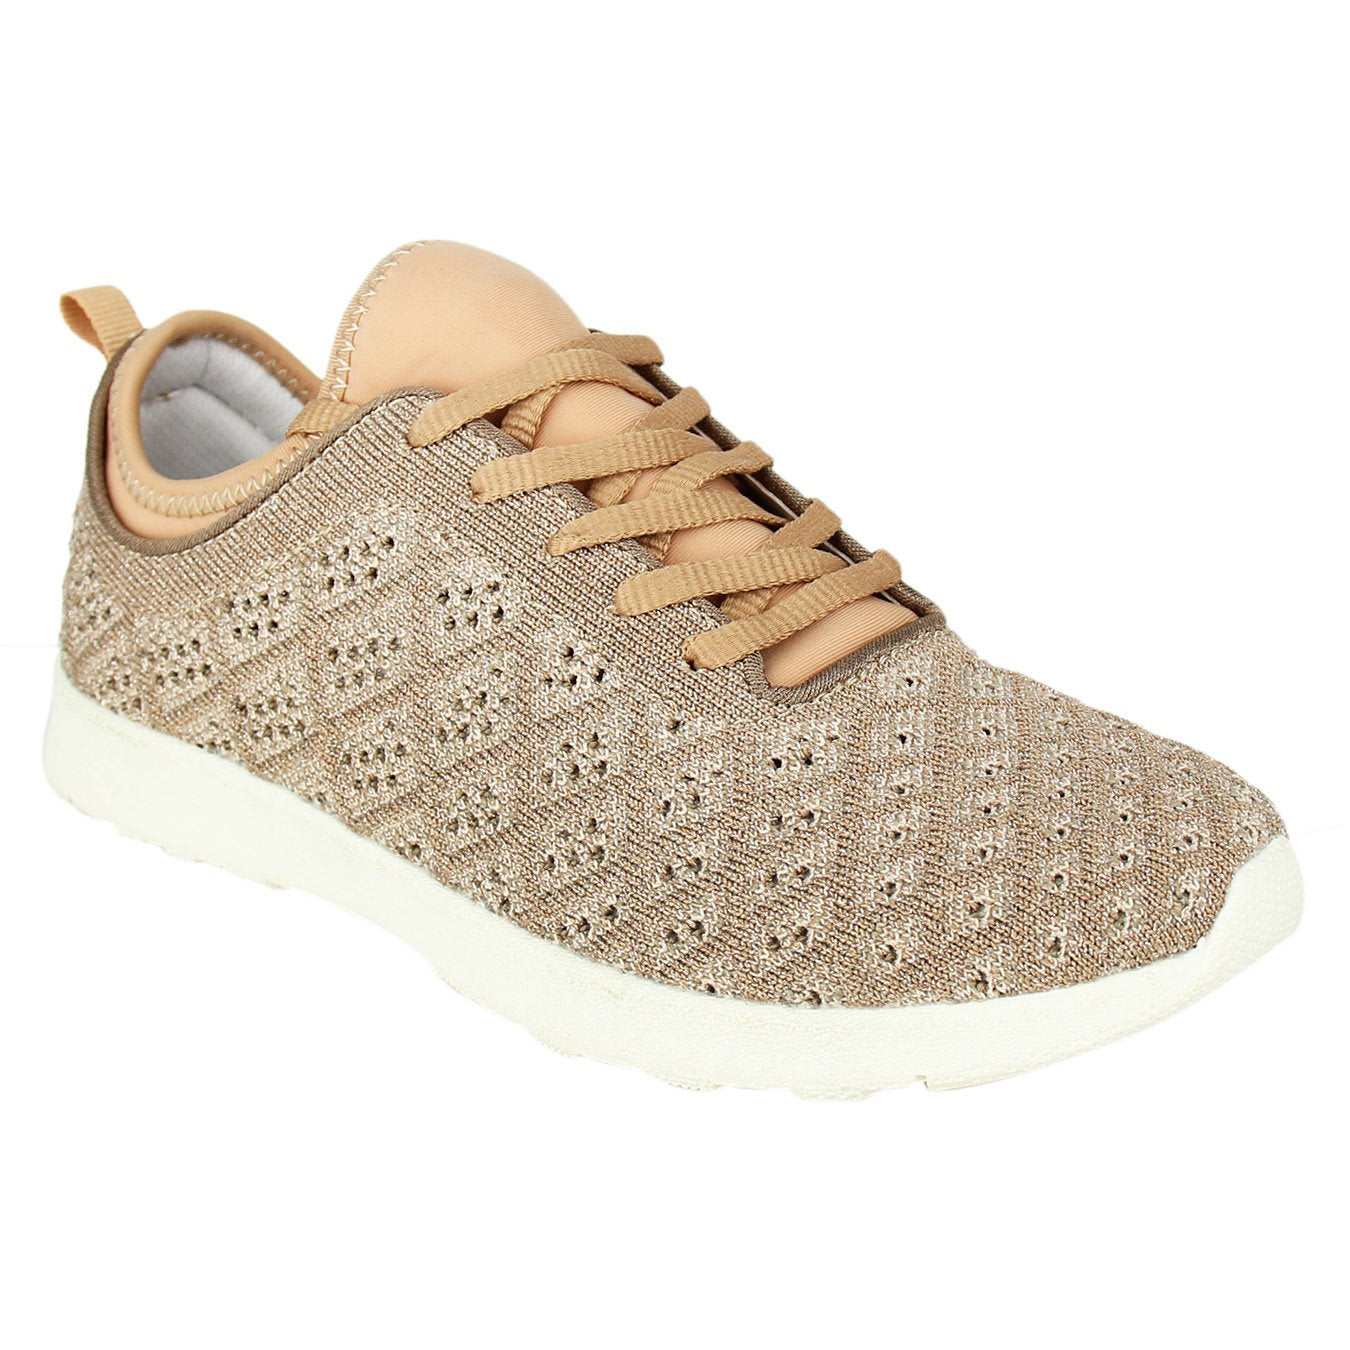 NOT RATED DESSA ROSE GOLD SNEAKER